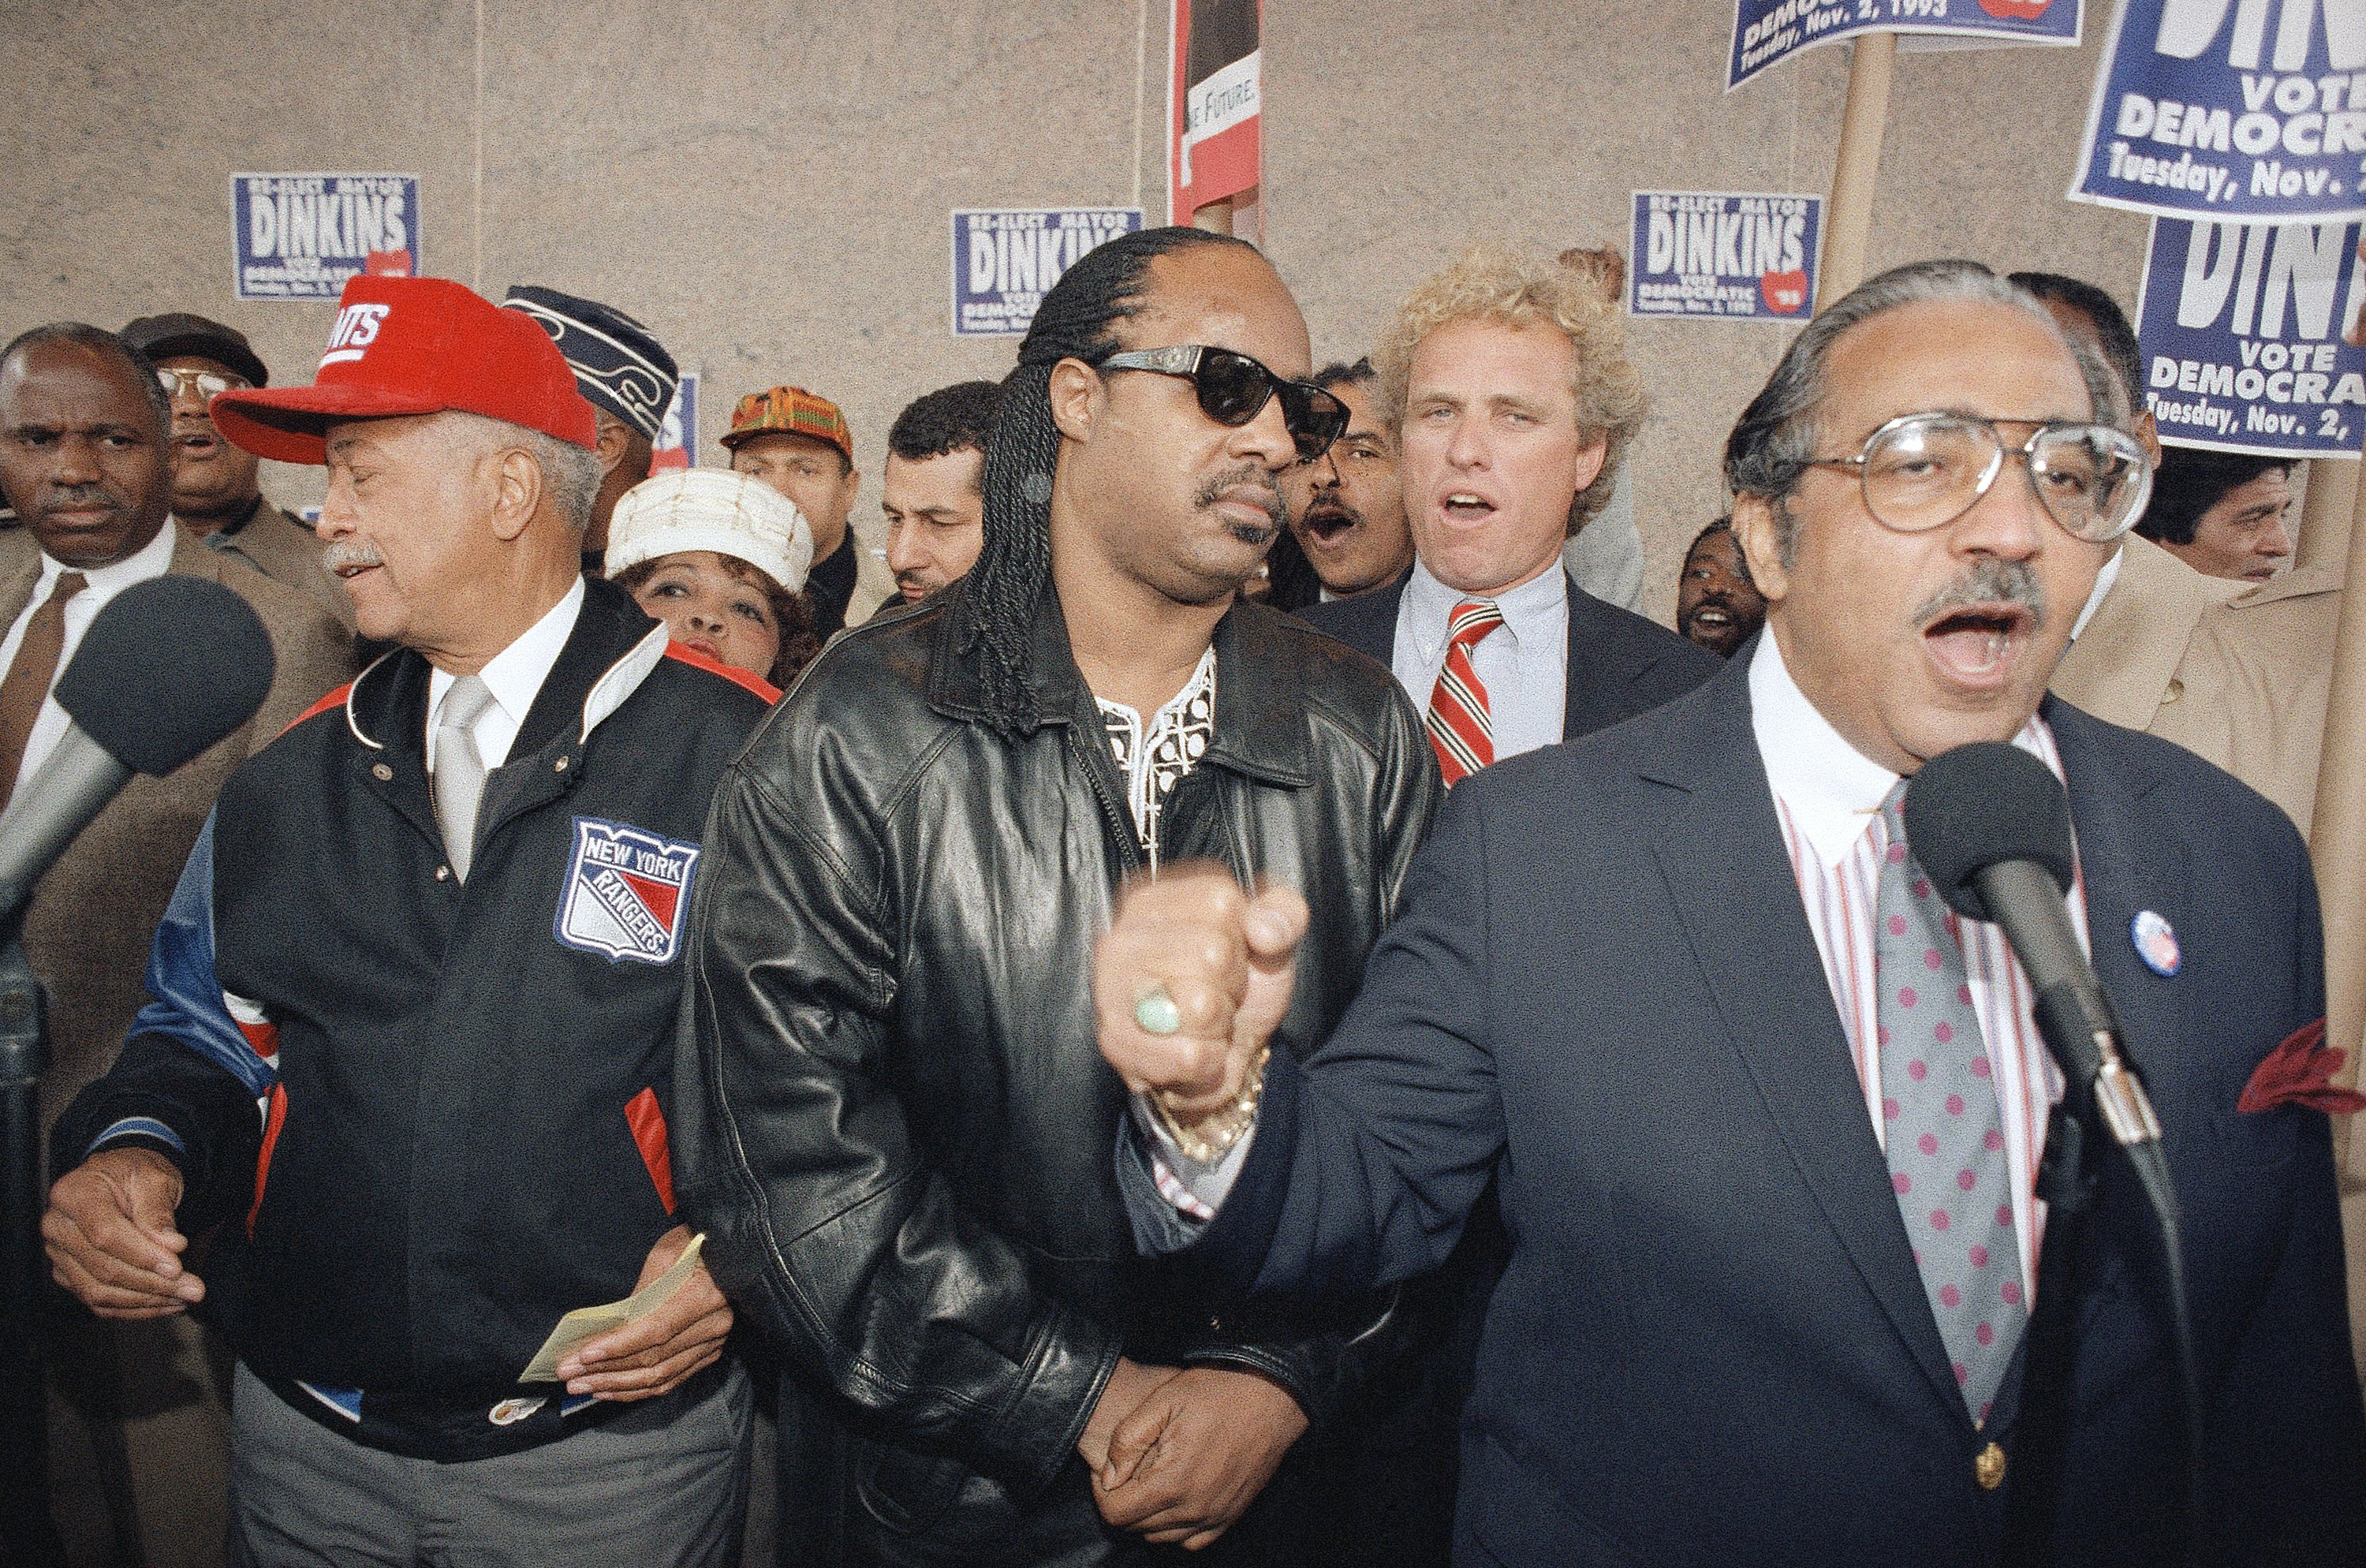 U.S. Congressman Charles Rangel, D-NY, right, voices his support for Mayor David Dinkins, left, along with singer Stevie Wonder, center, at a  Get Out The Vote  rally in the Harlem neighborhood of New York City on Oct. 30, 1993.